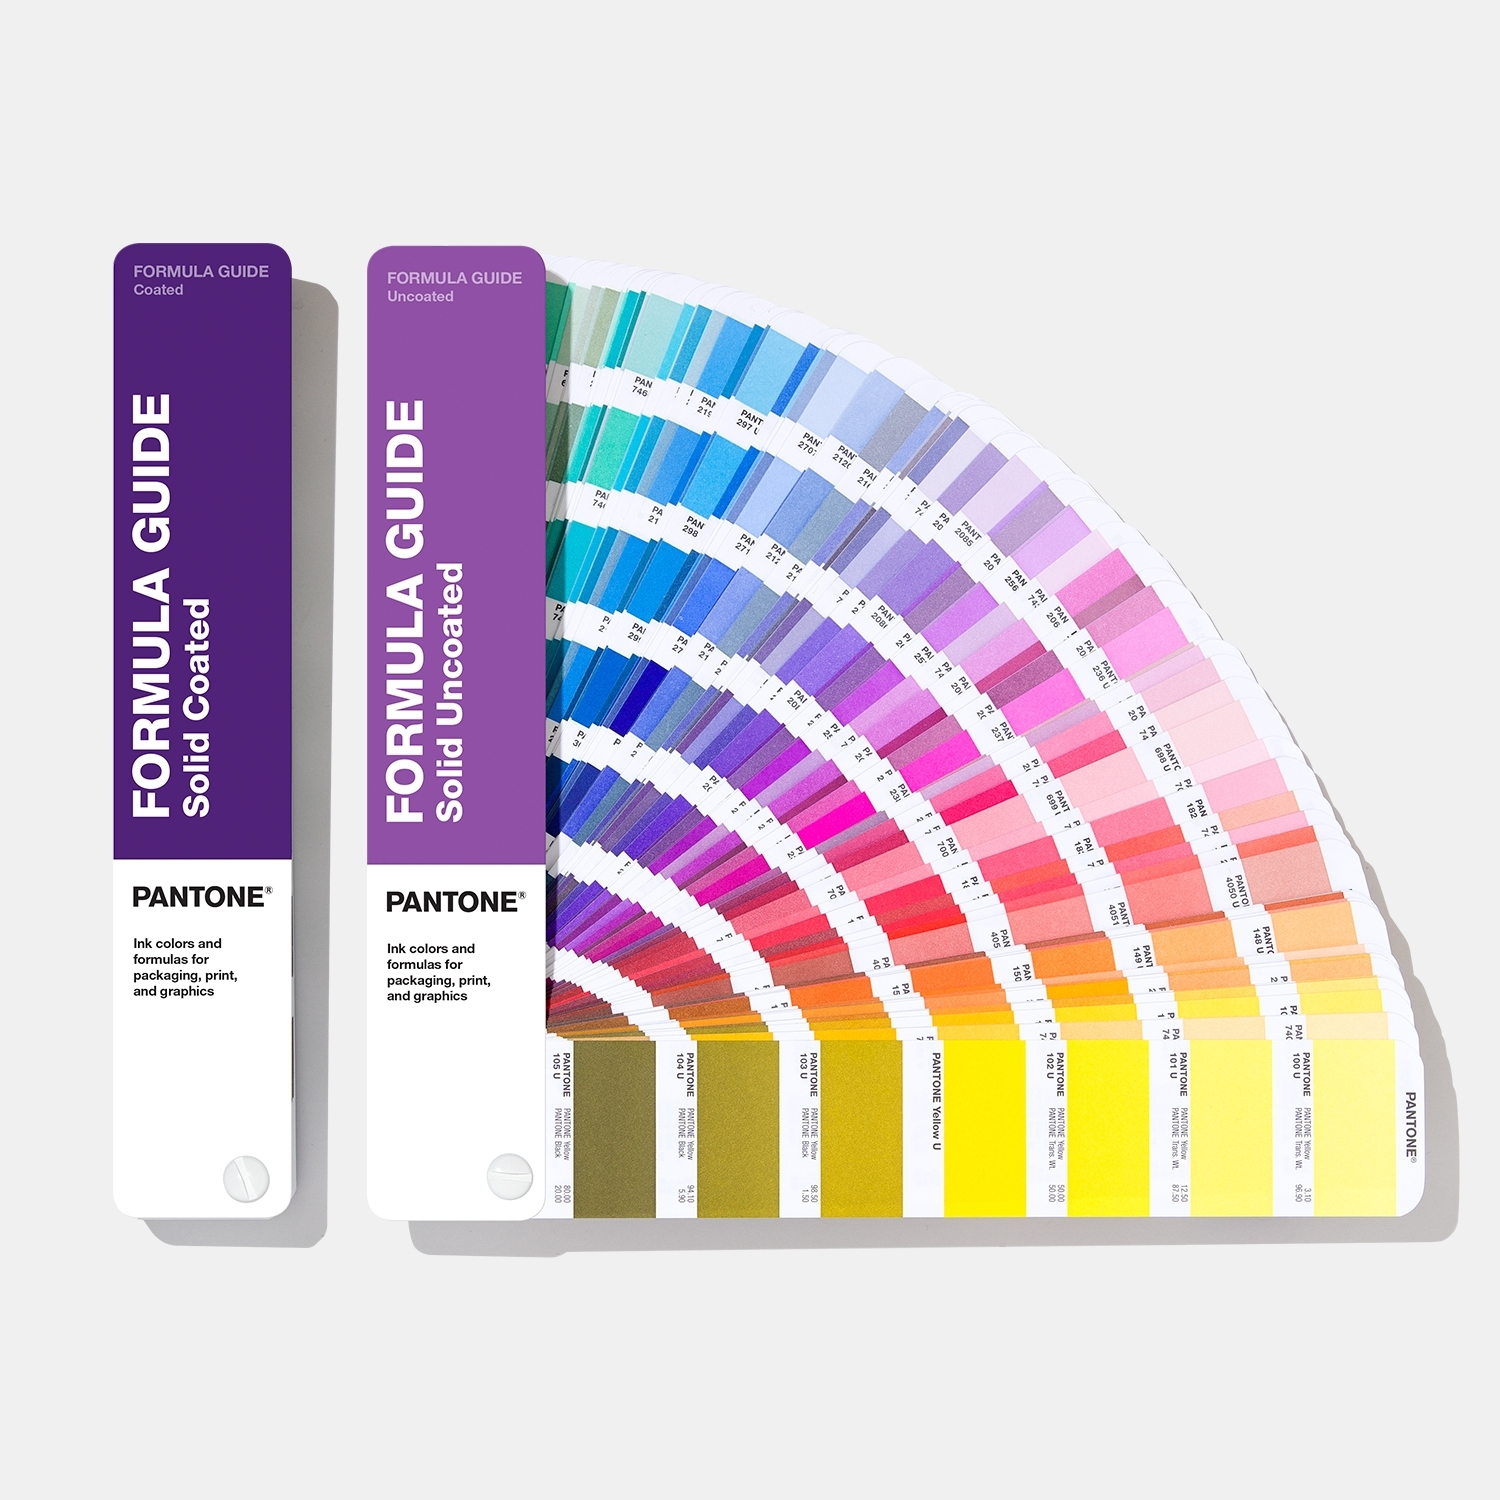 Pantone Colors 2020.Formula Guide Limited Edition Pantone Color Of The Year 2020